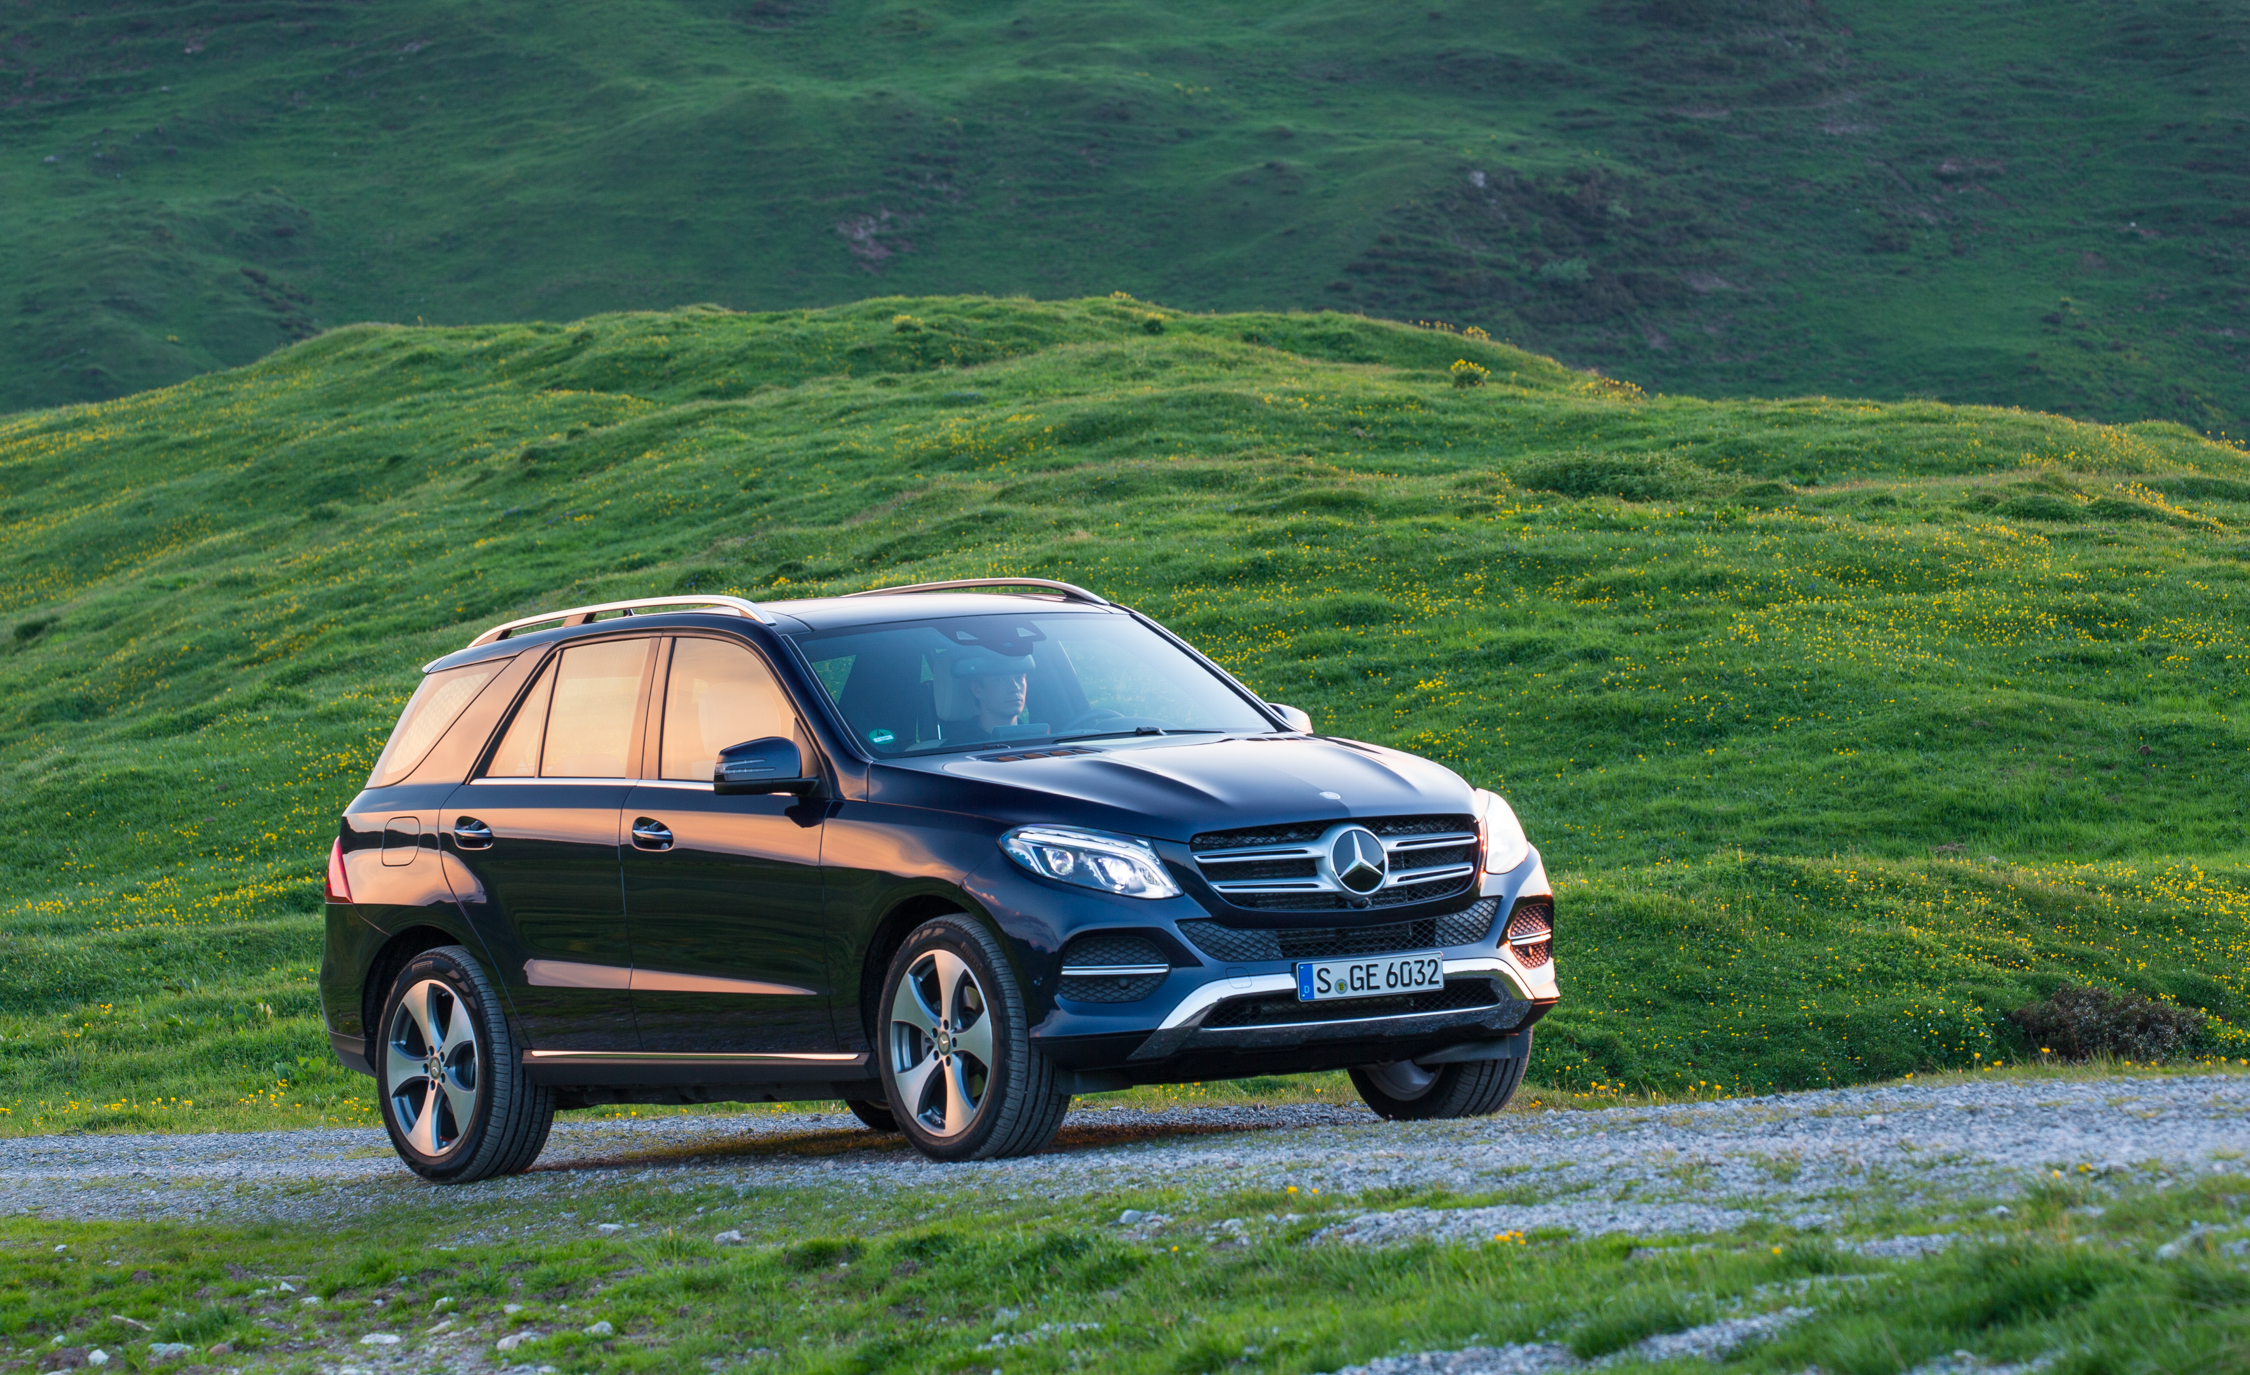 New 2016 Mercedes-Benz GLE250d 4MATIC